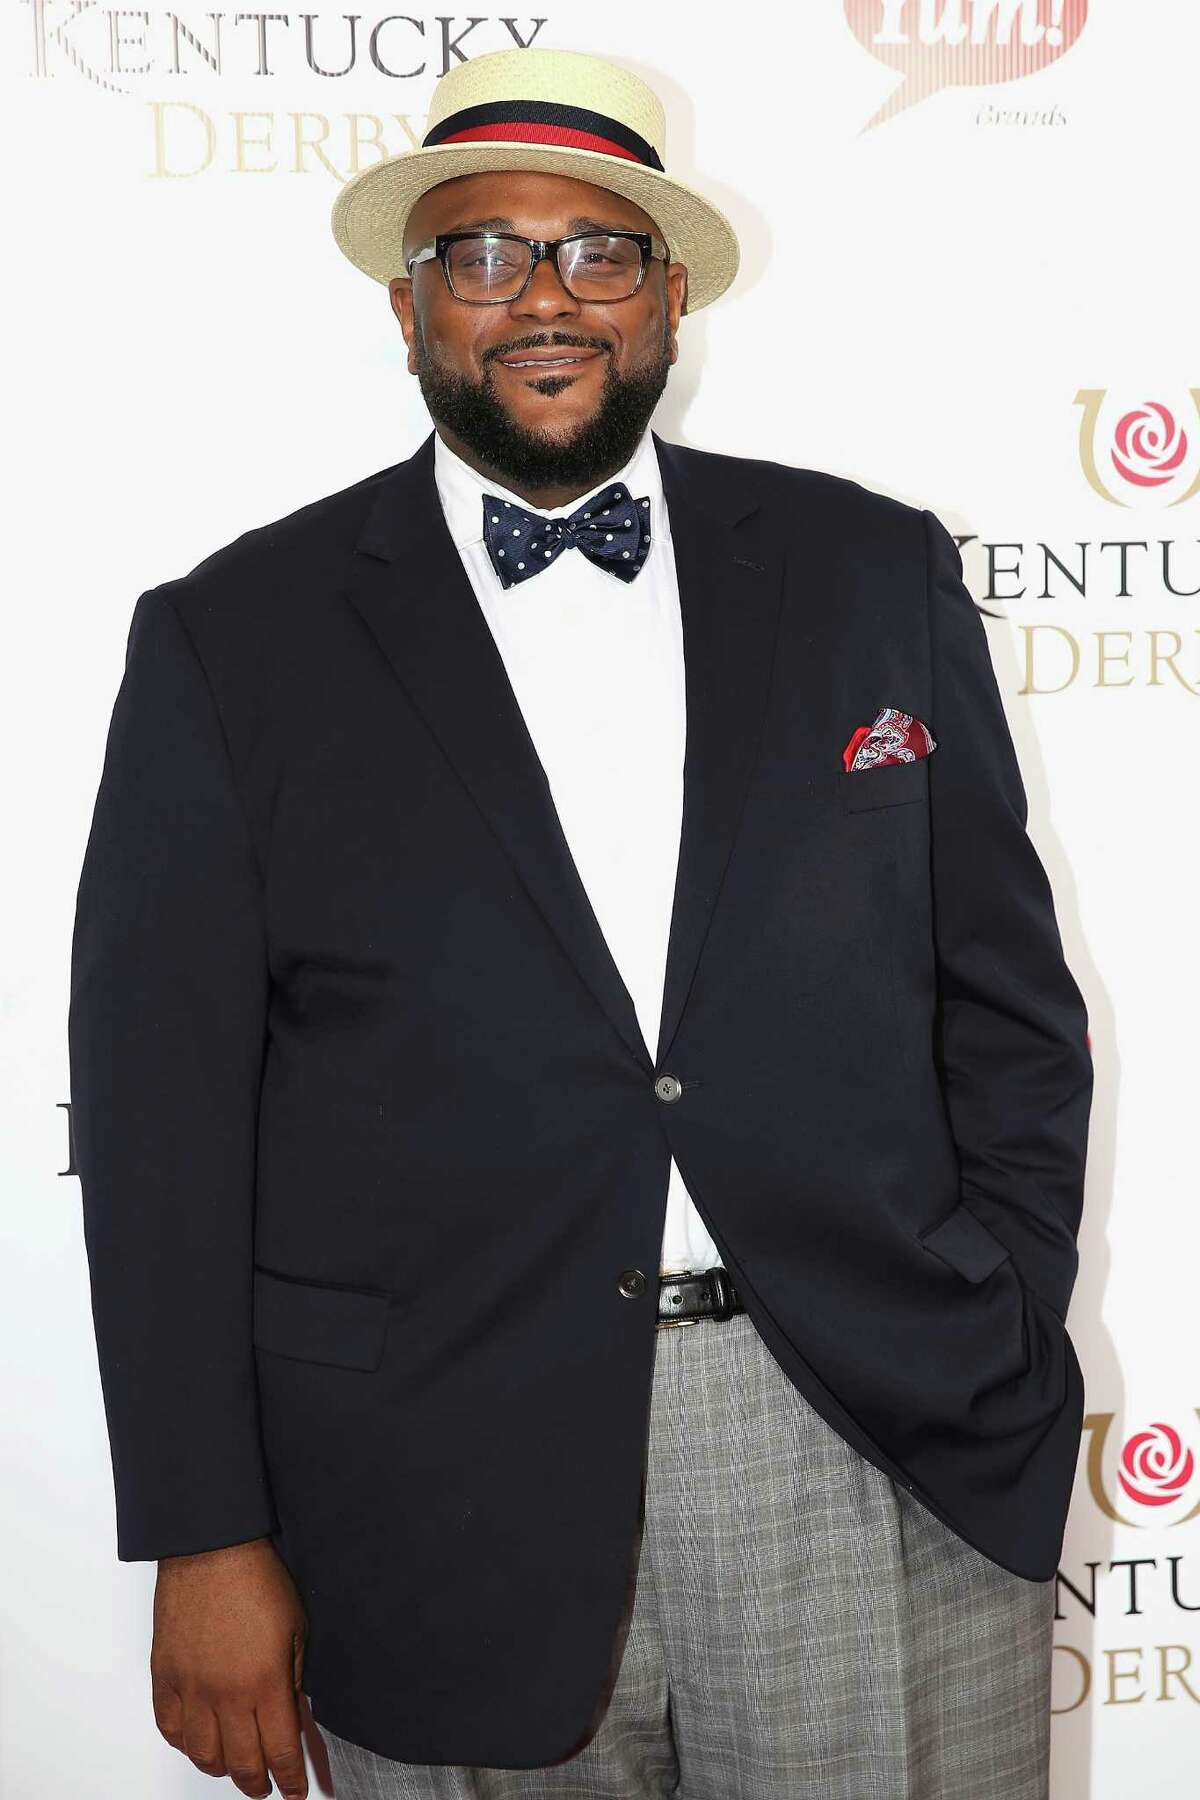 Season 2 winner: Ruben Studdard Also known as the guy who beat Clay Aiken.Hometown: Birmingham, AlabamaAge: 37Highlights: His best-selling album was his first, the 2003 release